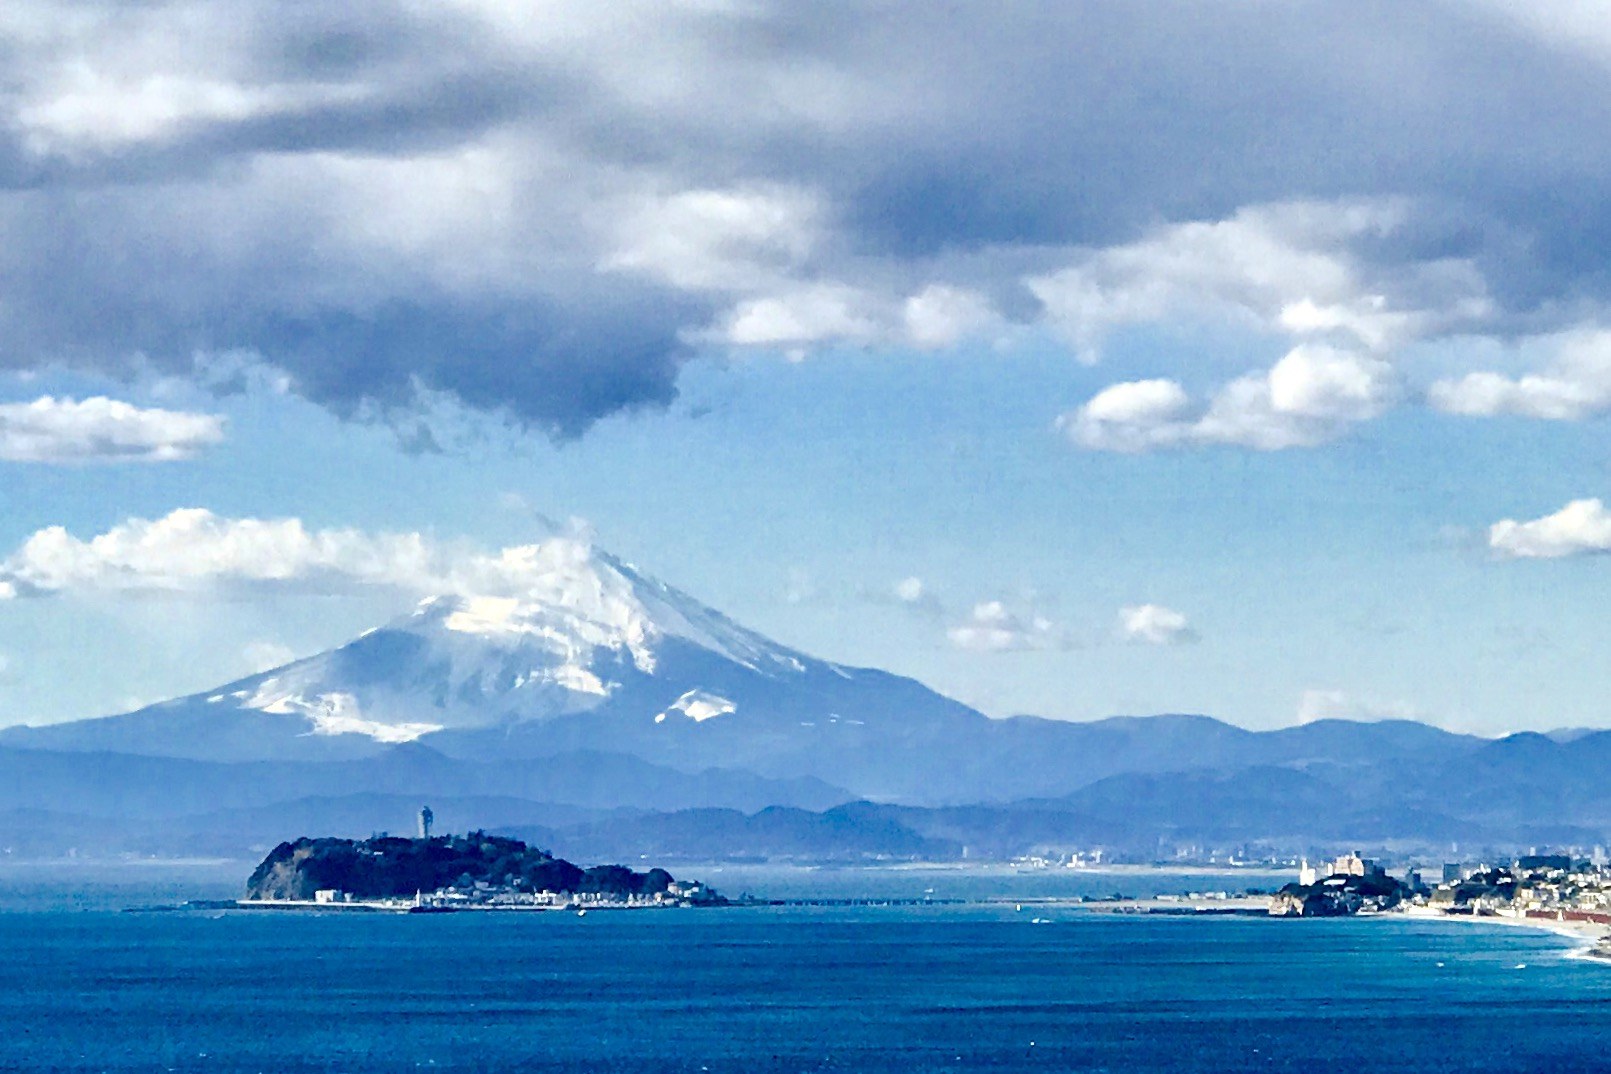 Tokyo day trips: A cultural experience on Enoshima Island